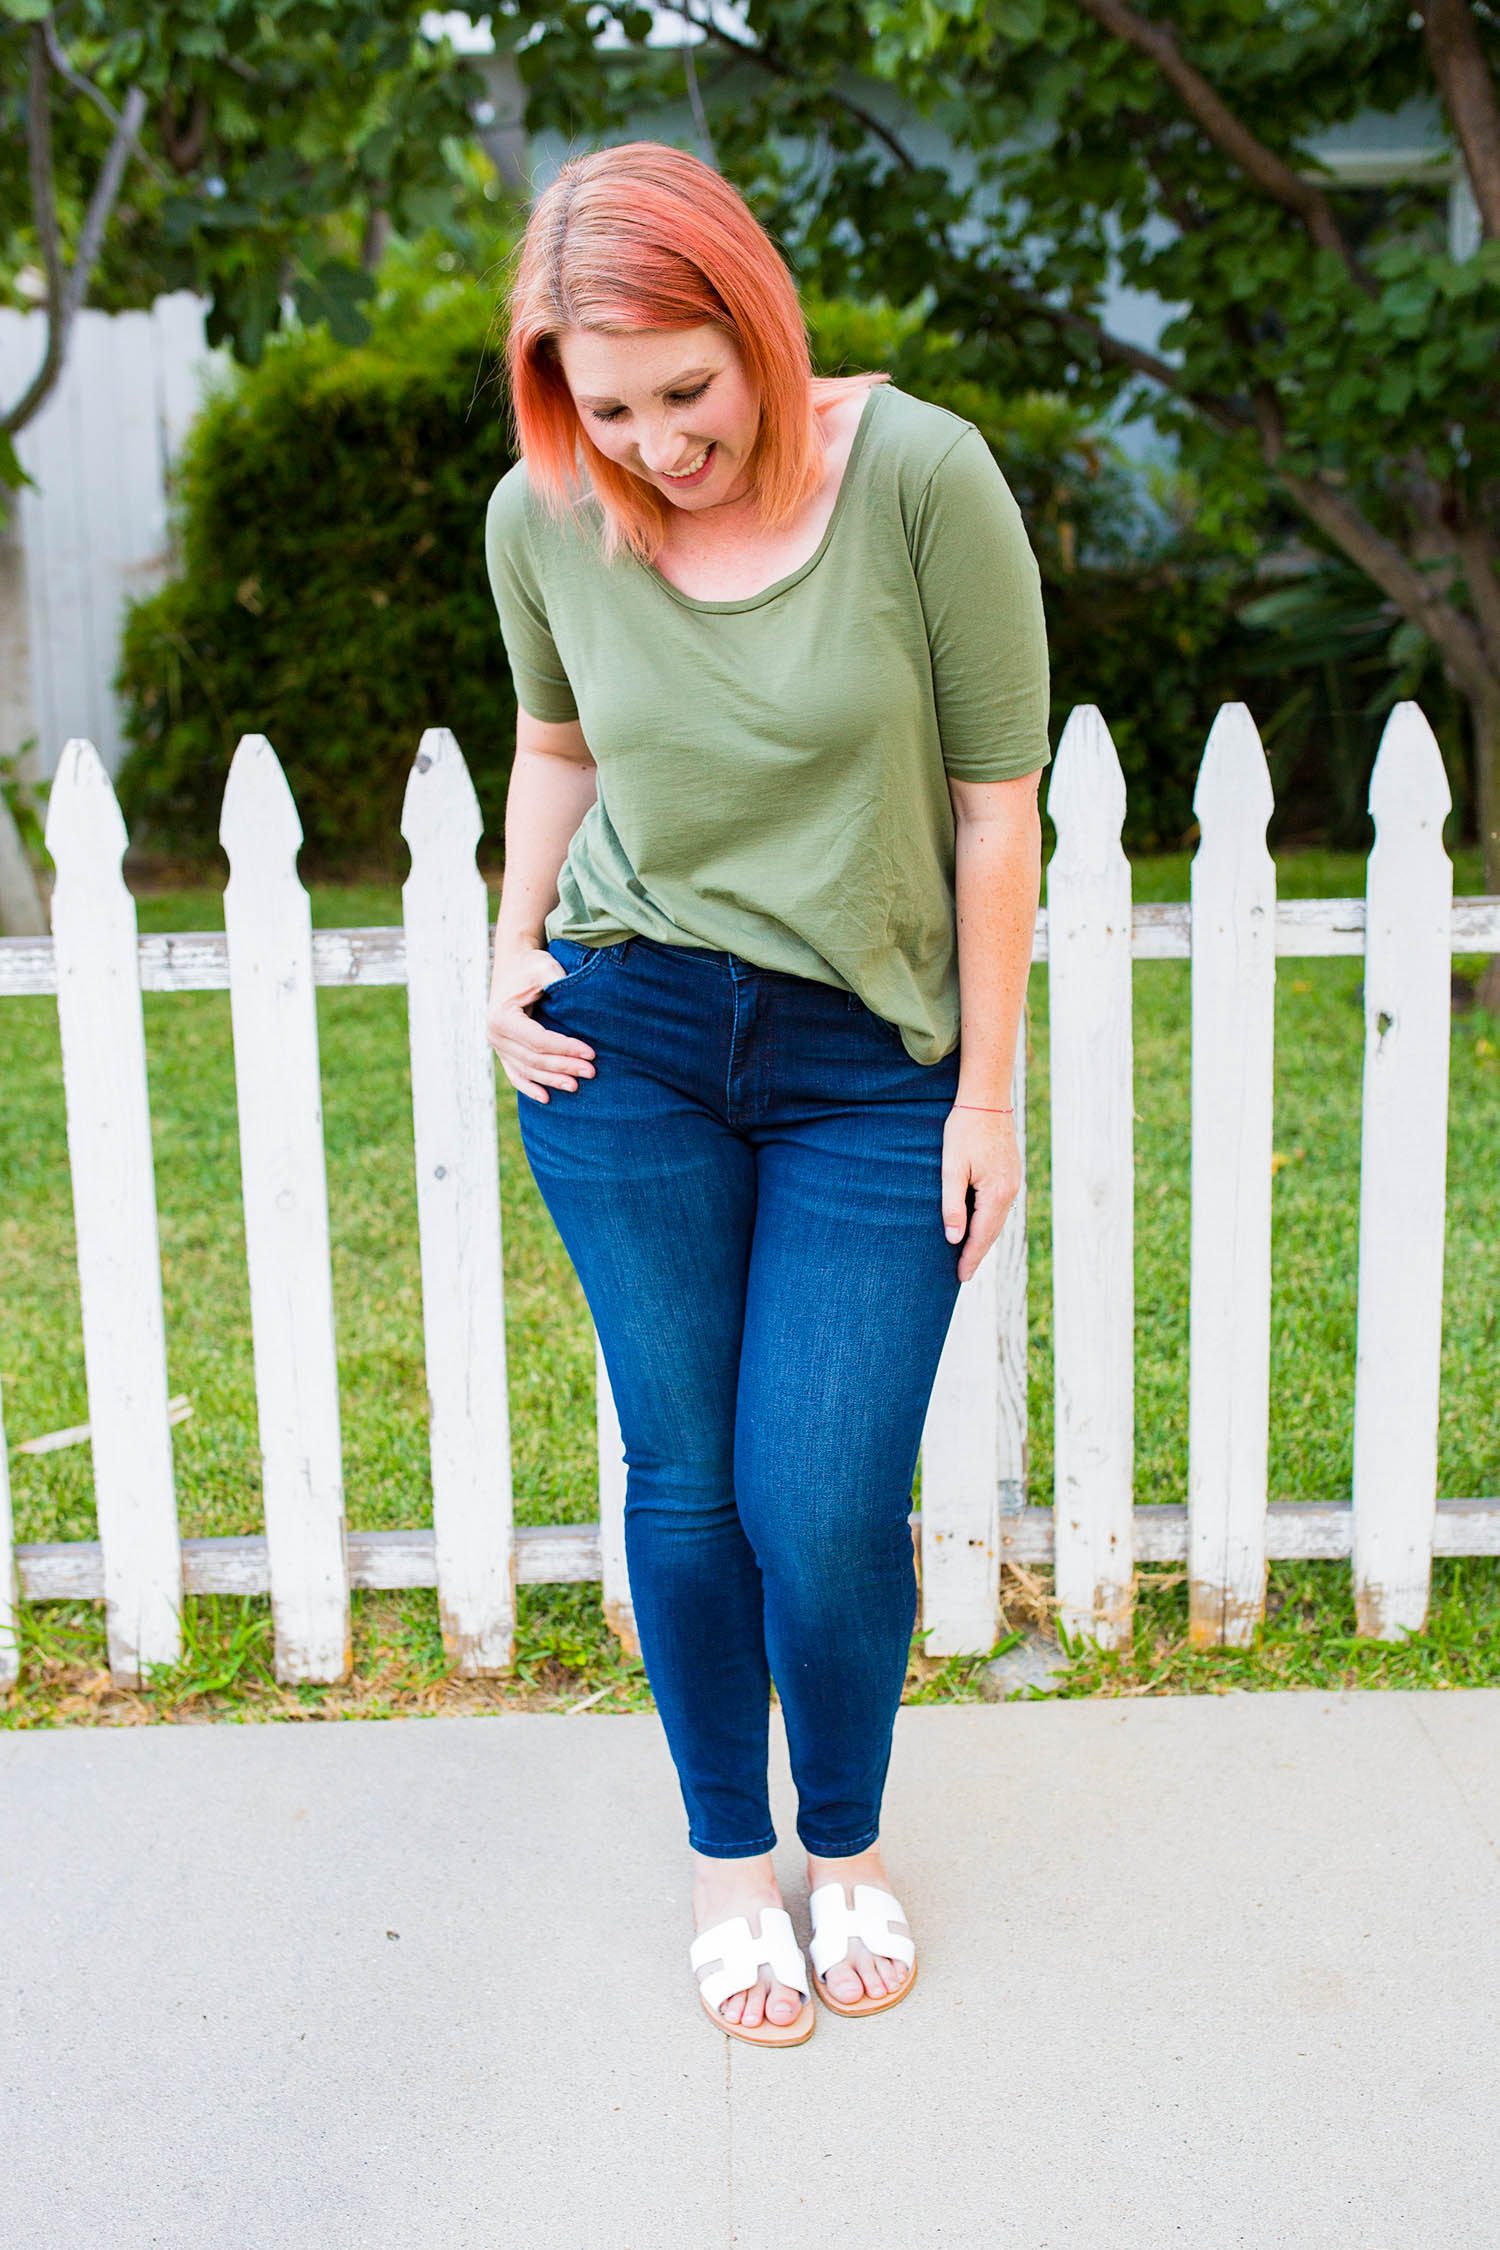 If you're on the hunt for basic dark blue jeans for a pear shaped body, these are PERFECTION!